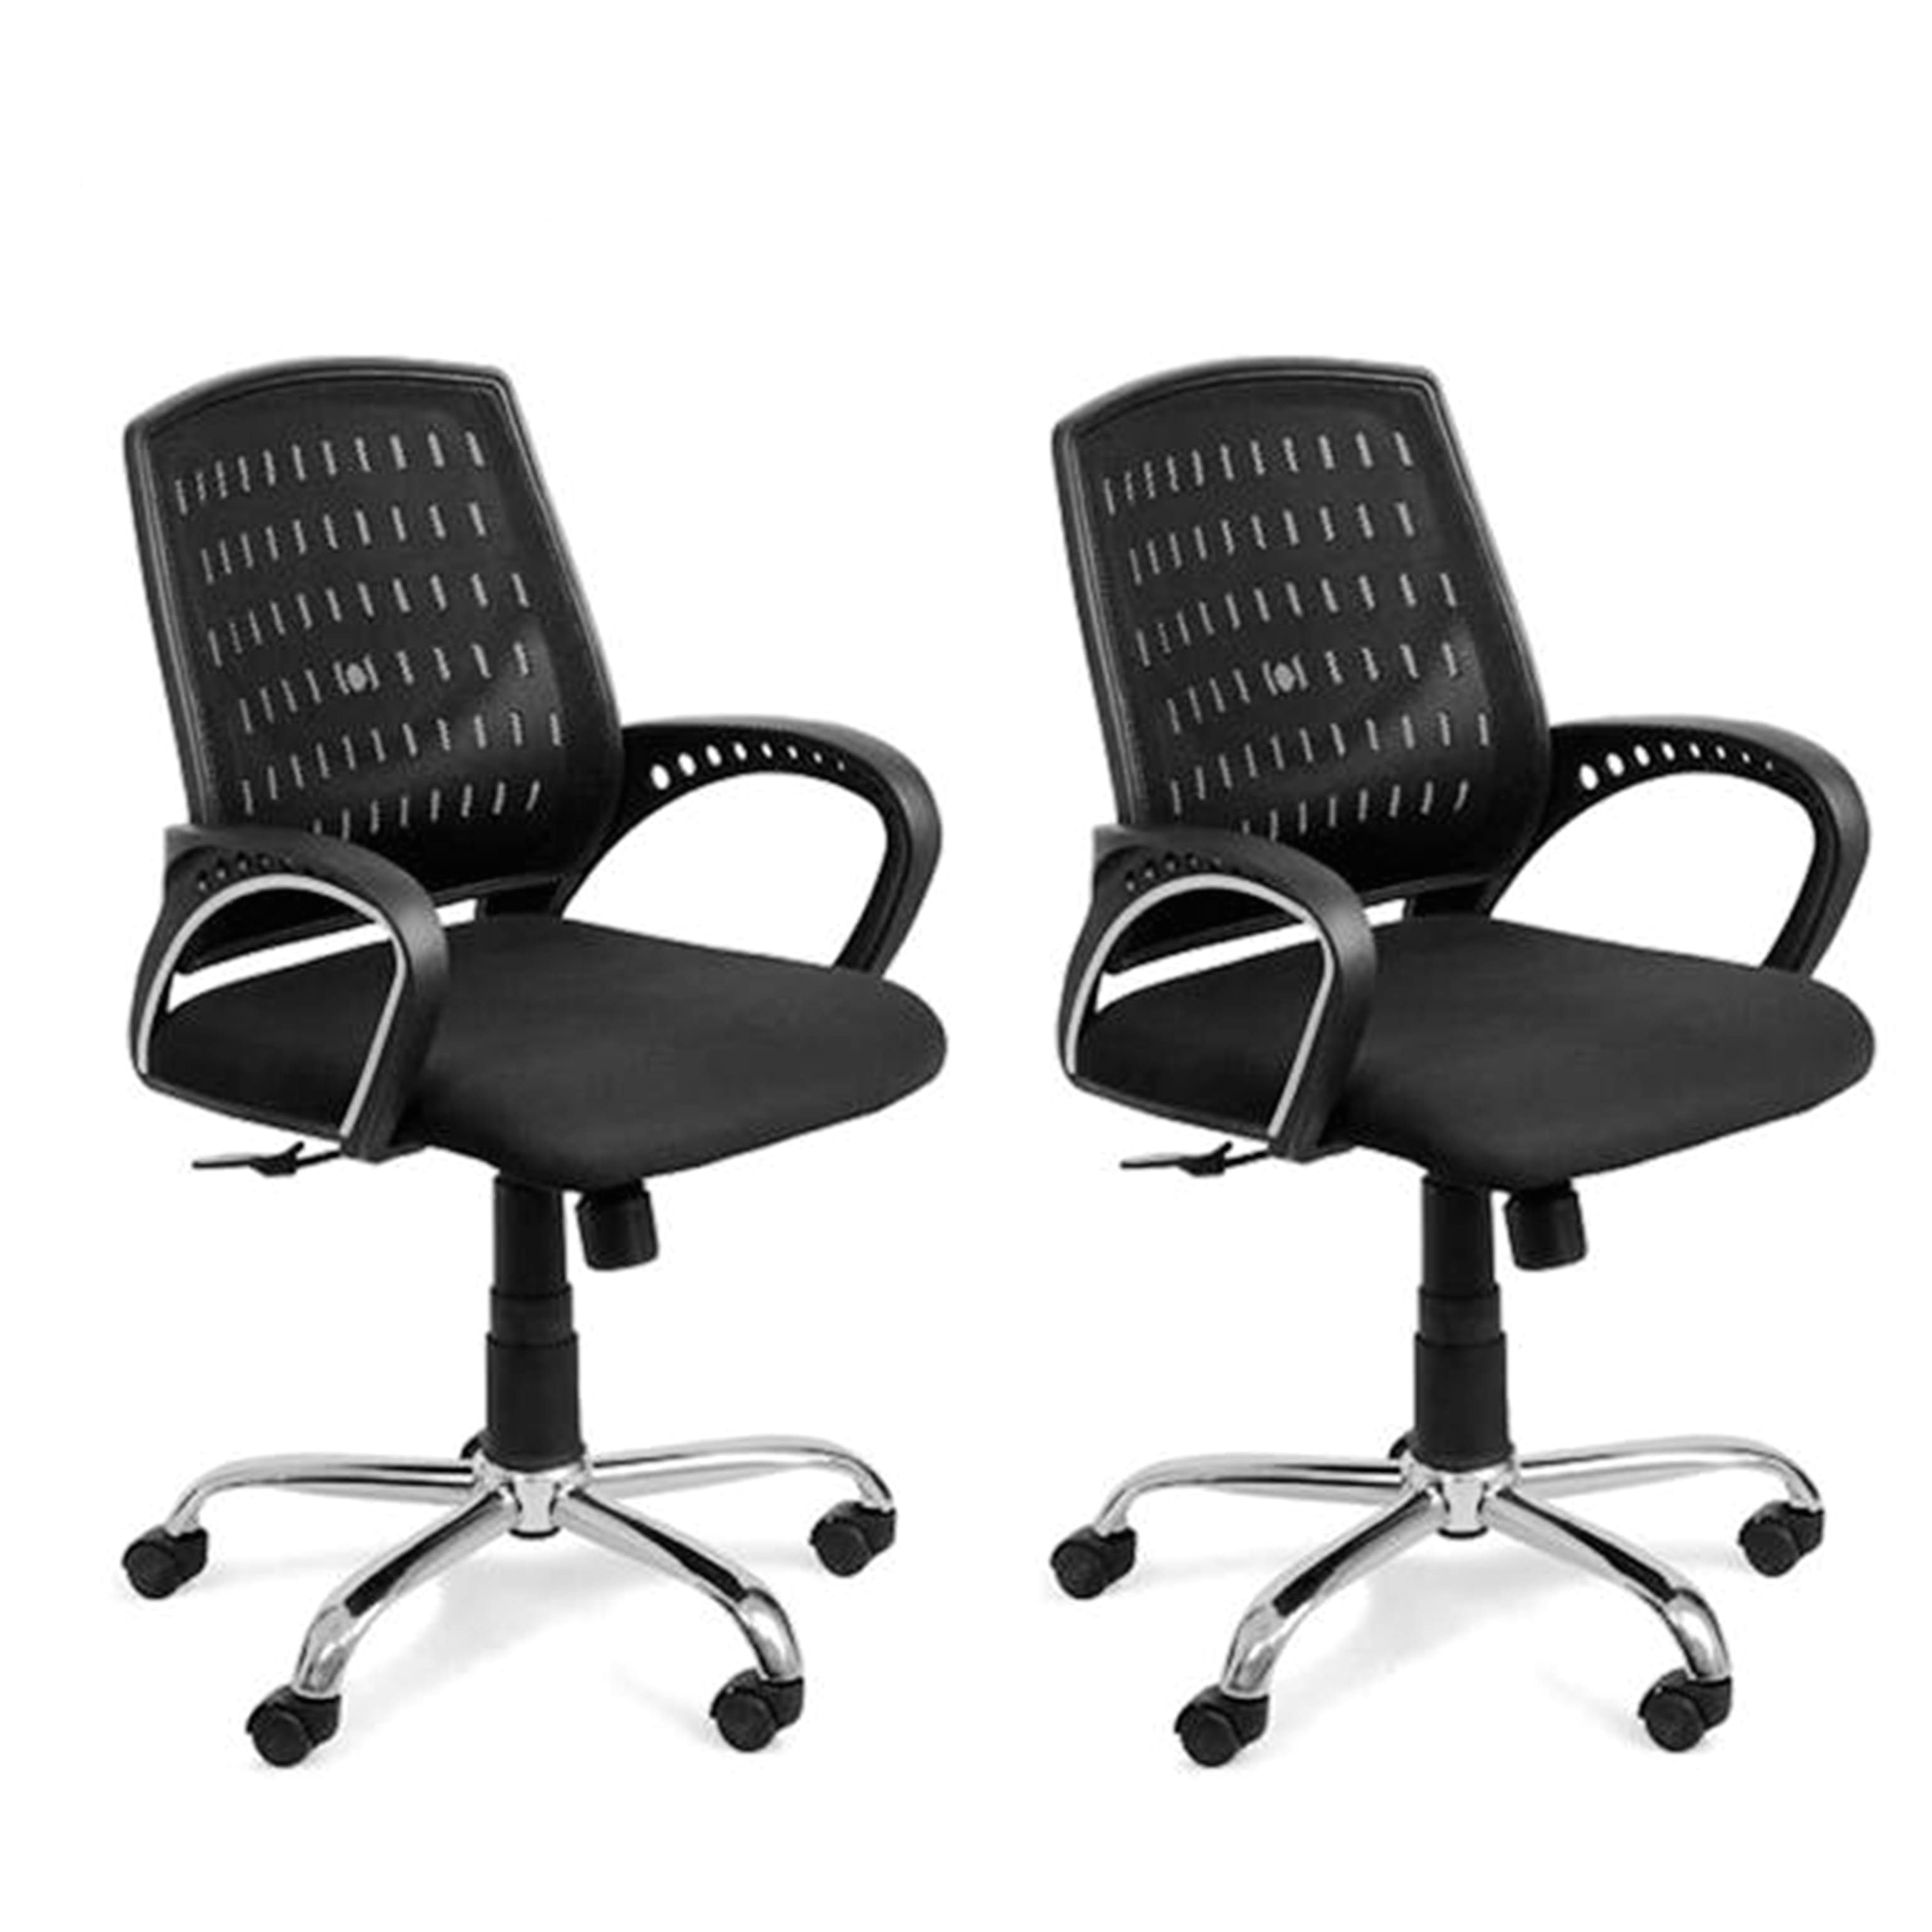 buy 1 mesh back office chair get 1 free